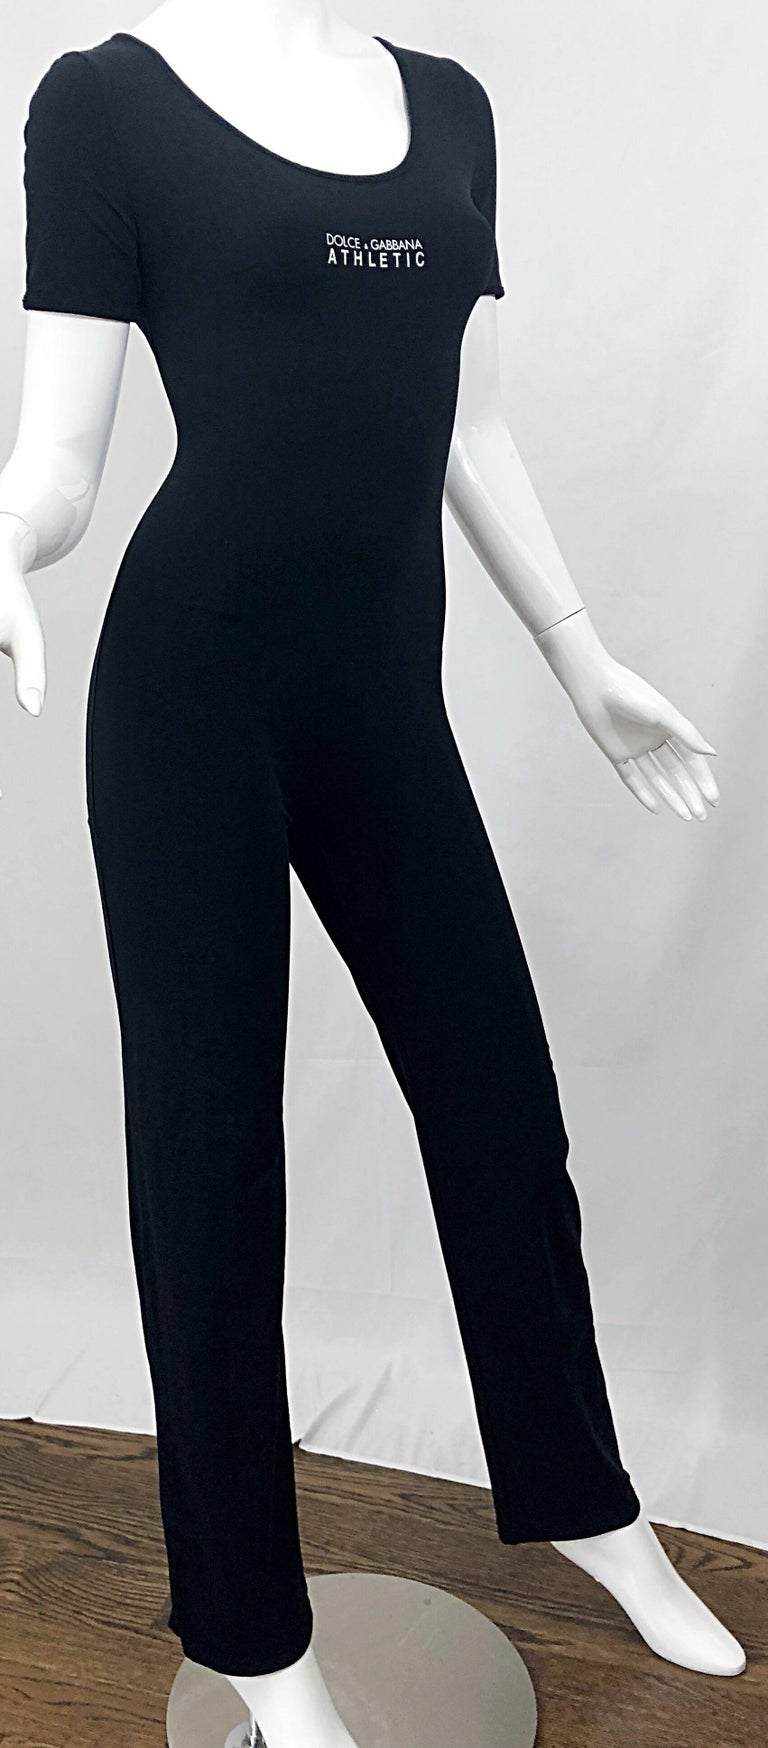 1990s Dolce & Gabbana Black and White Athletic One Piece Vintage 90s Jumpsuit For Sale 5